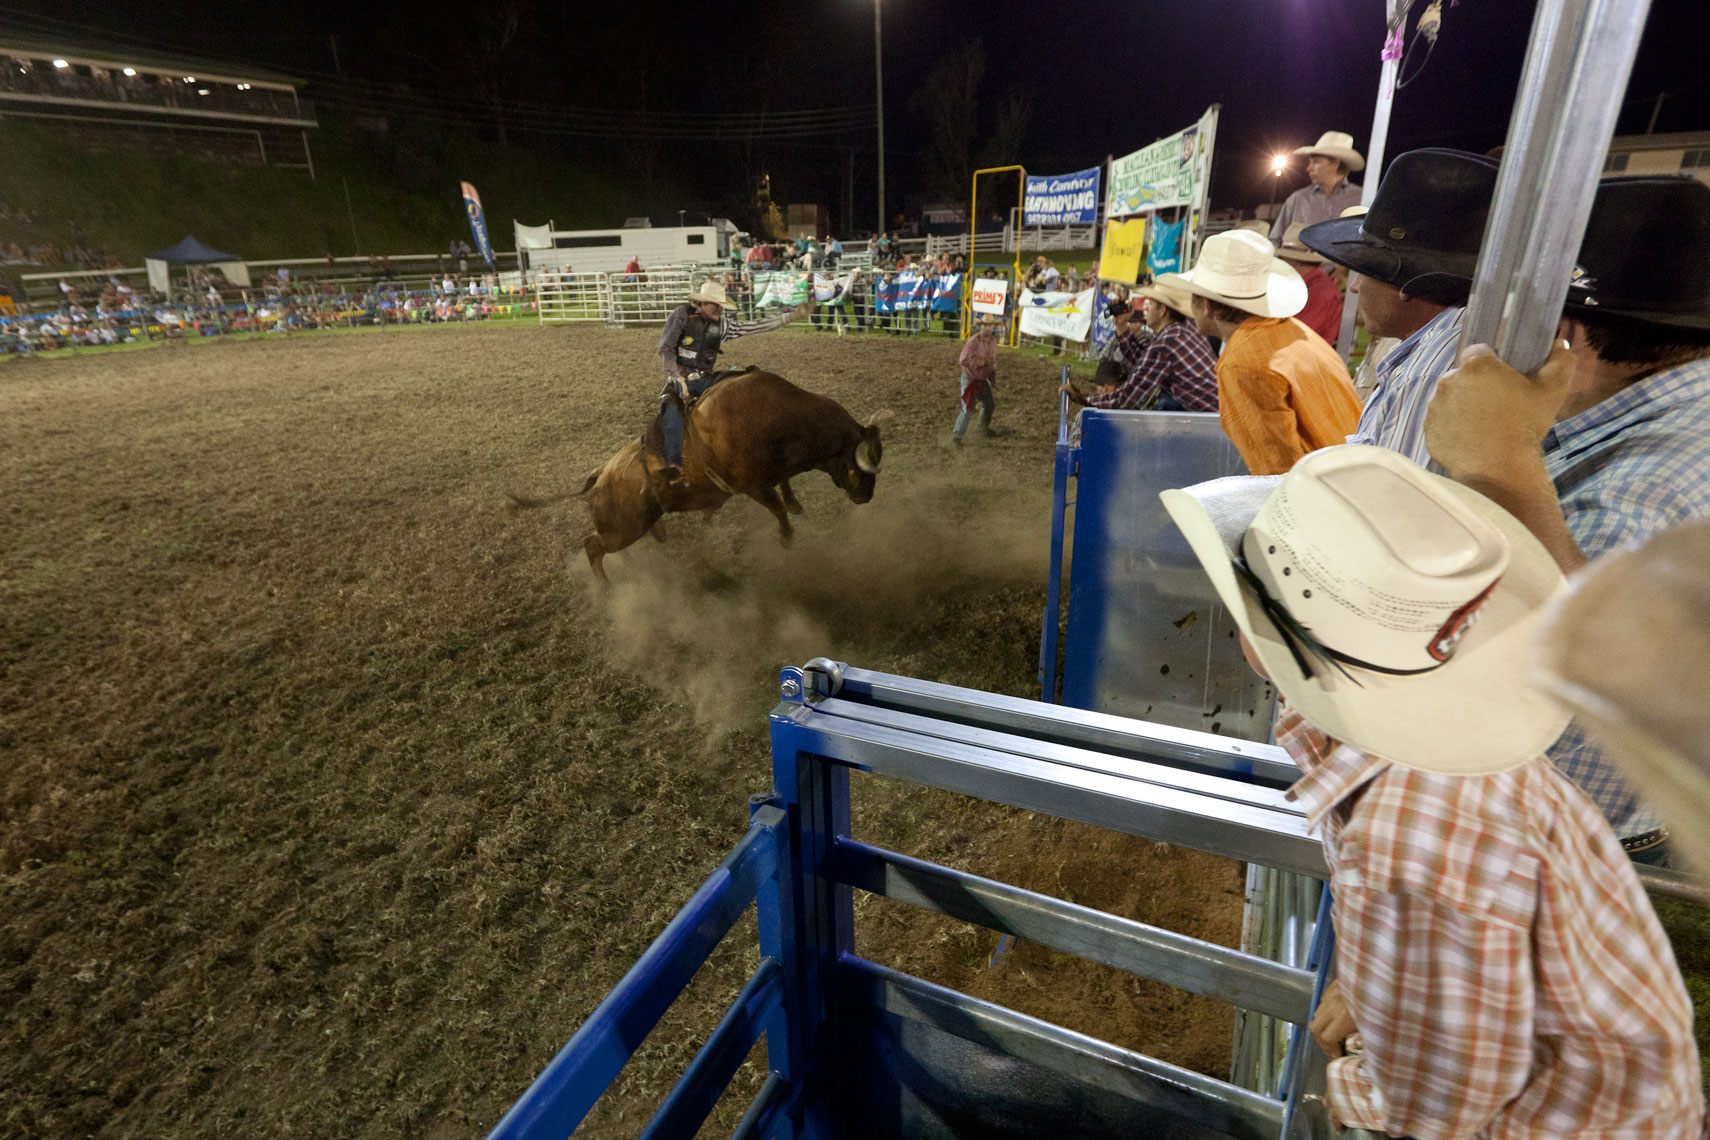 017_MacleanRodeo_MG_4944.jpg